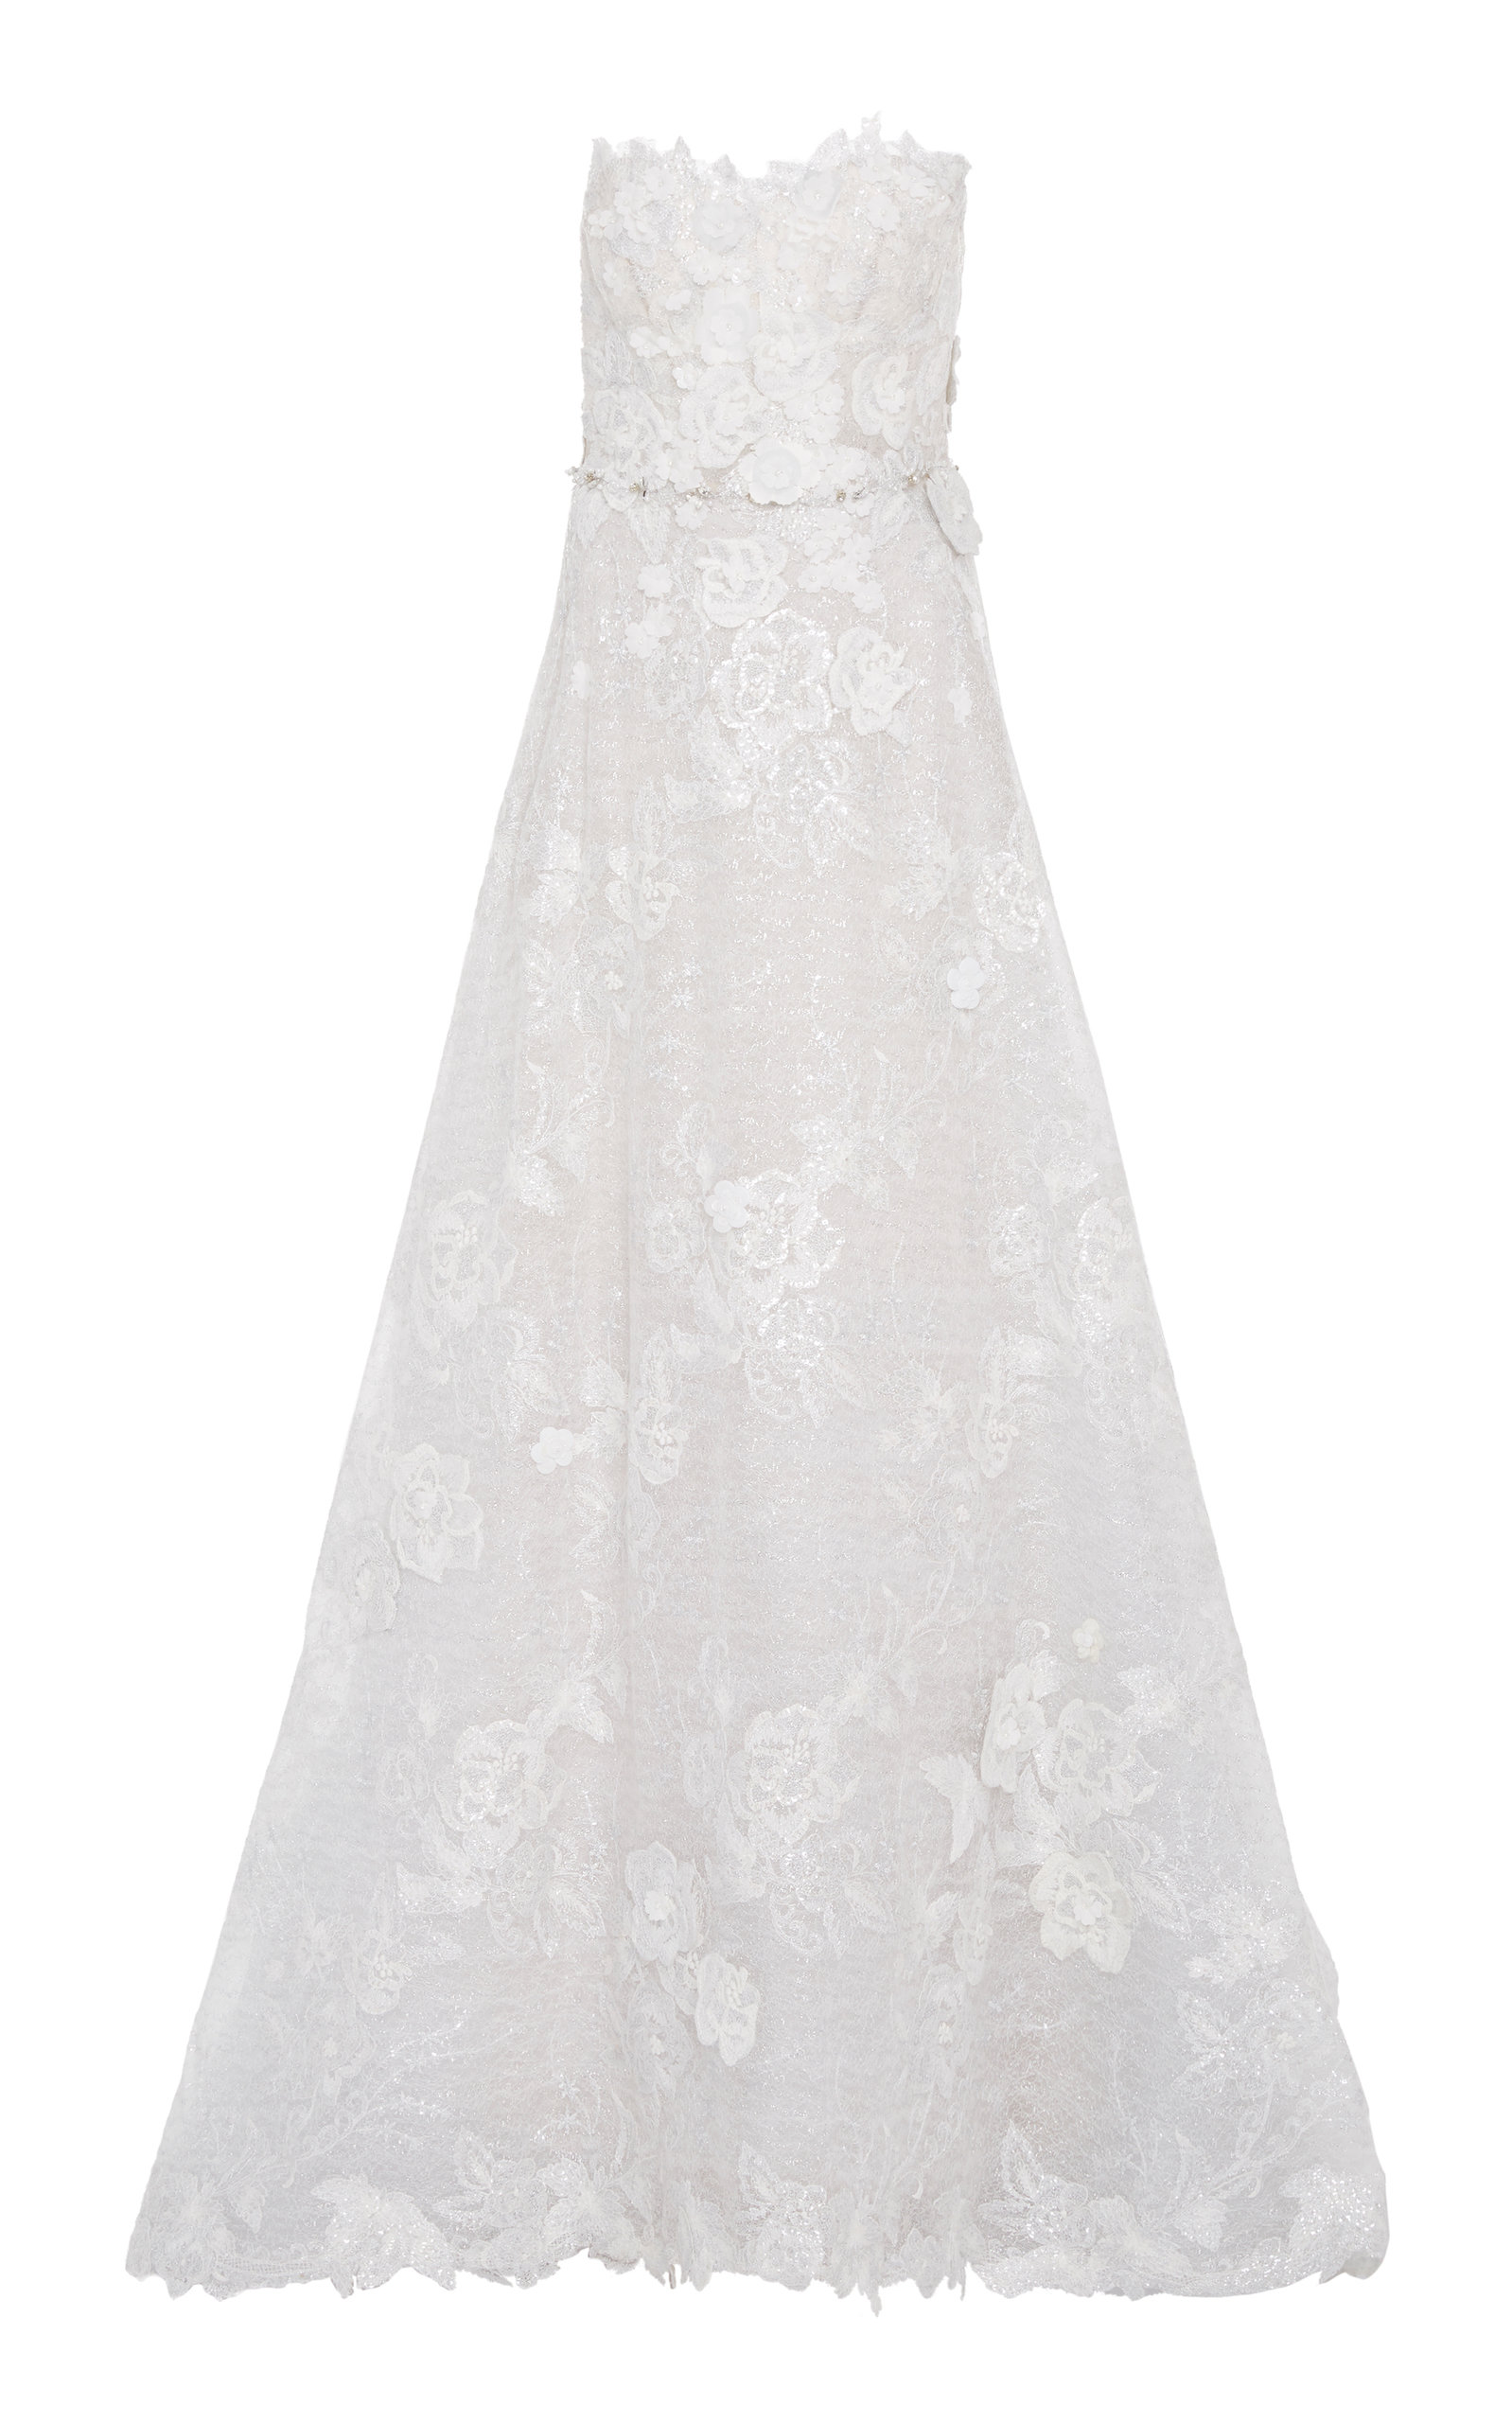 MIRA ZWILLINGER Ashalia Floral-Embellished Gown in White